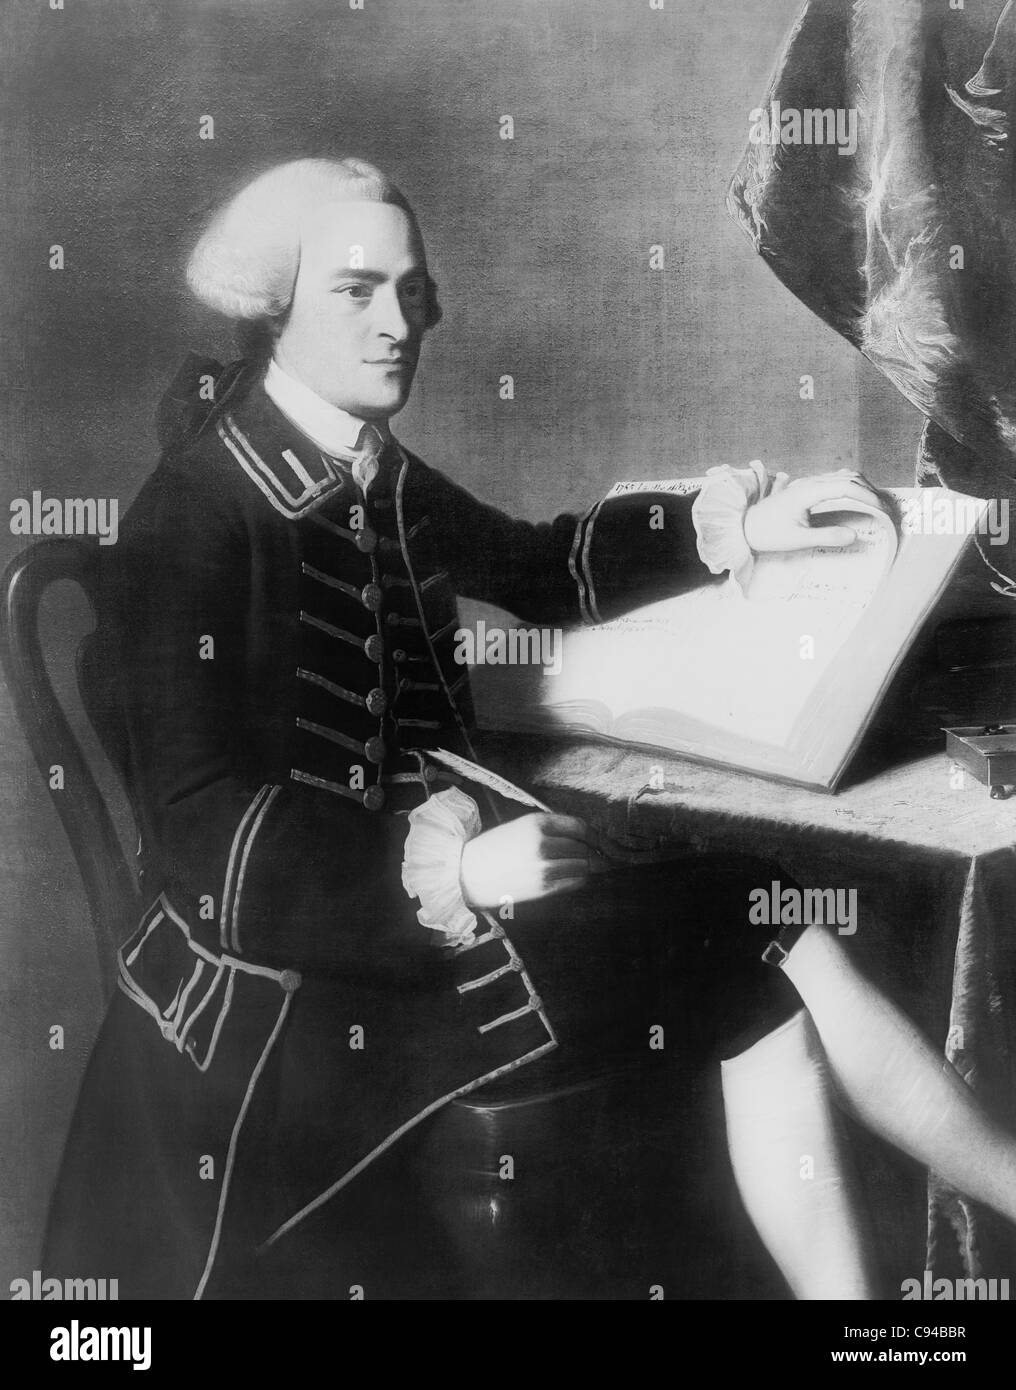 Vintage portrait painting of American statesman John Hancock (1737 - 1793) - President of the Second Continental - Stock Image